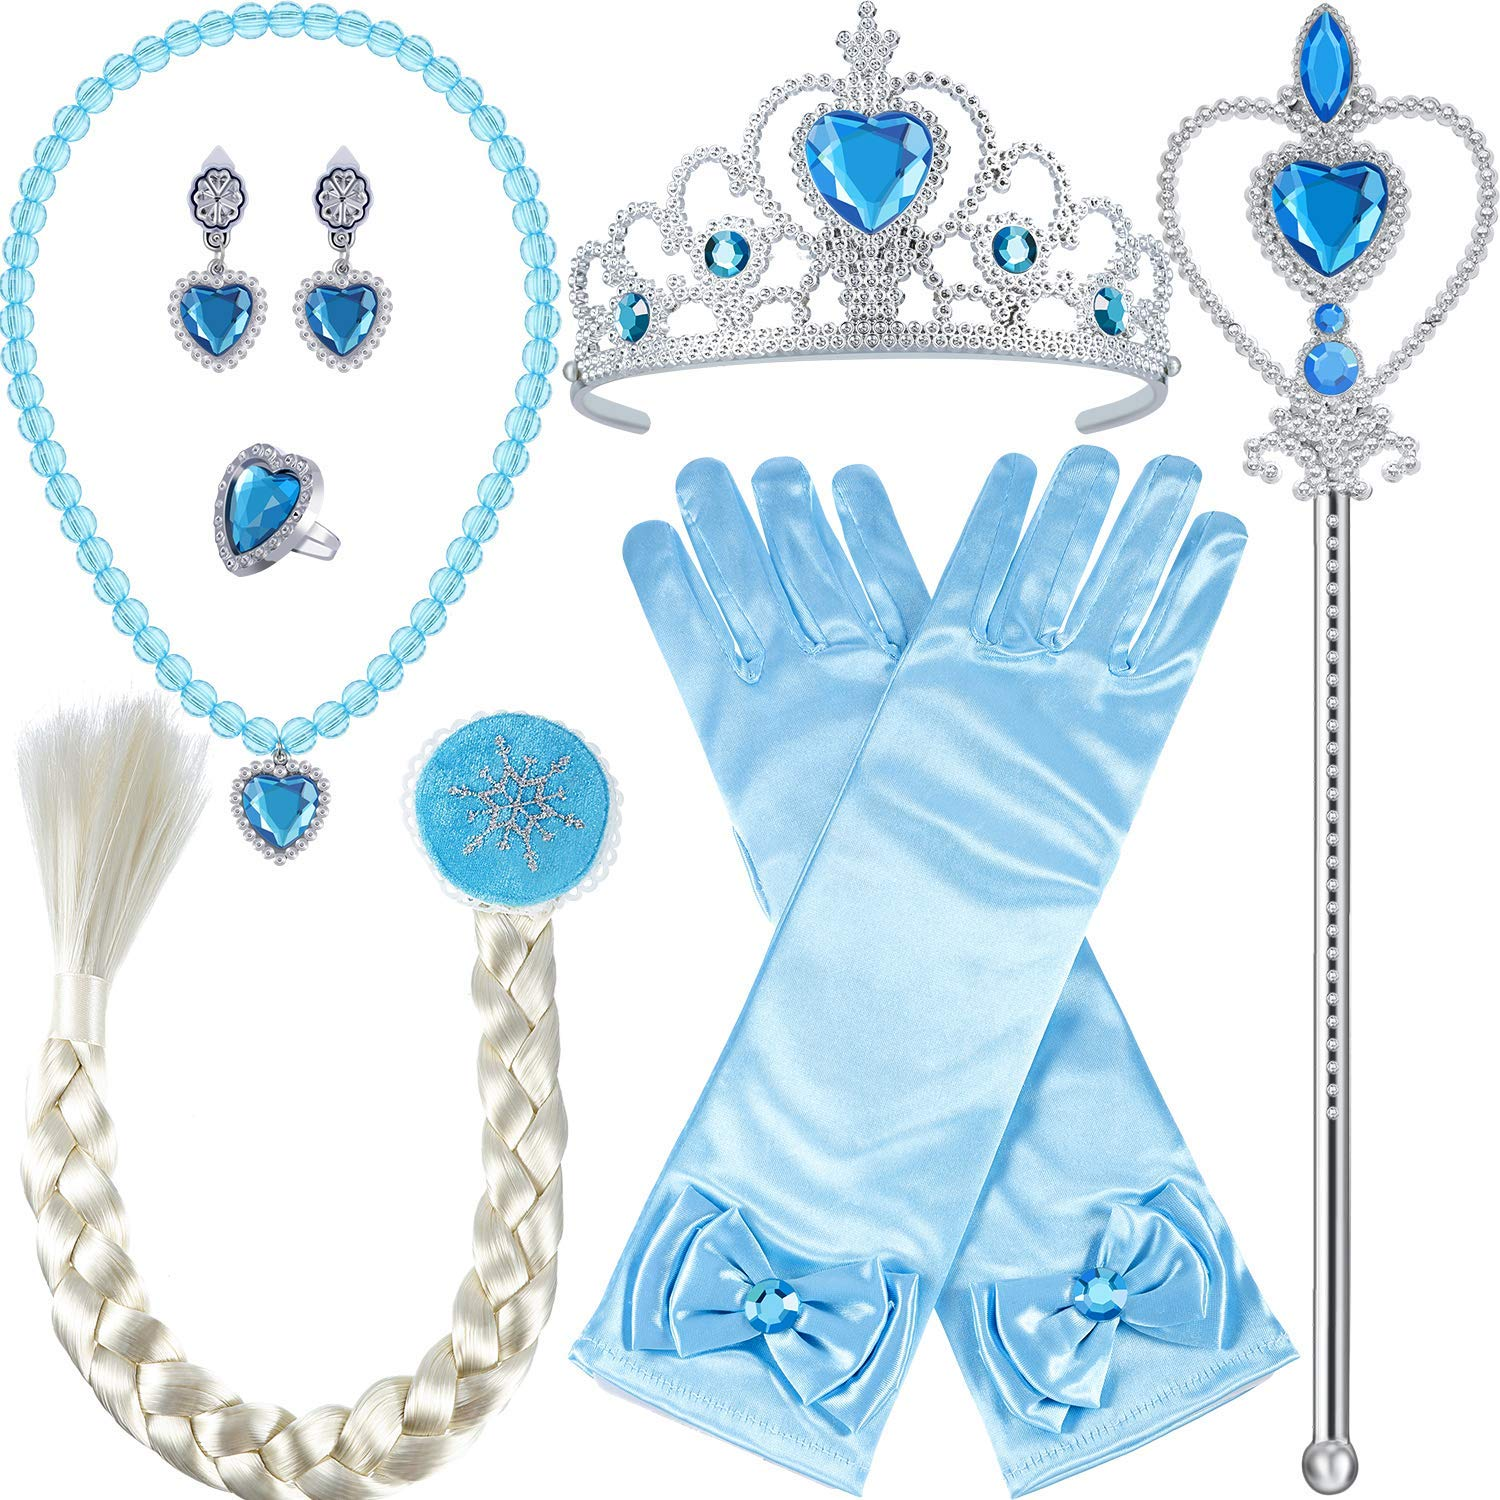 Tatuo 9 Pieces Princess Dress Up Accessories Girls Kids Full Costume Set, Includes Earrings Gloves Wand Braid Crown Necklace Rings, Blue